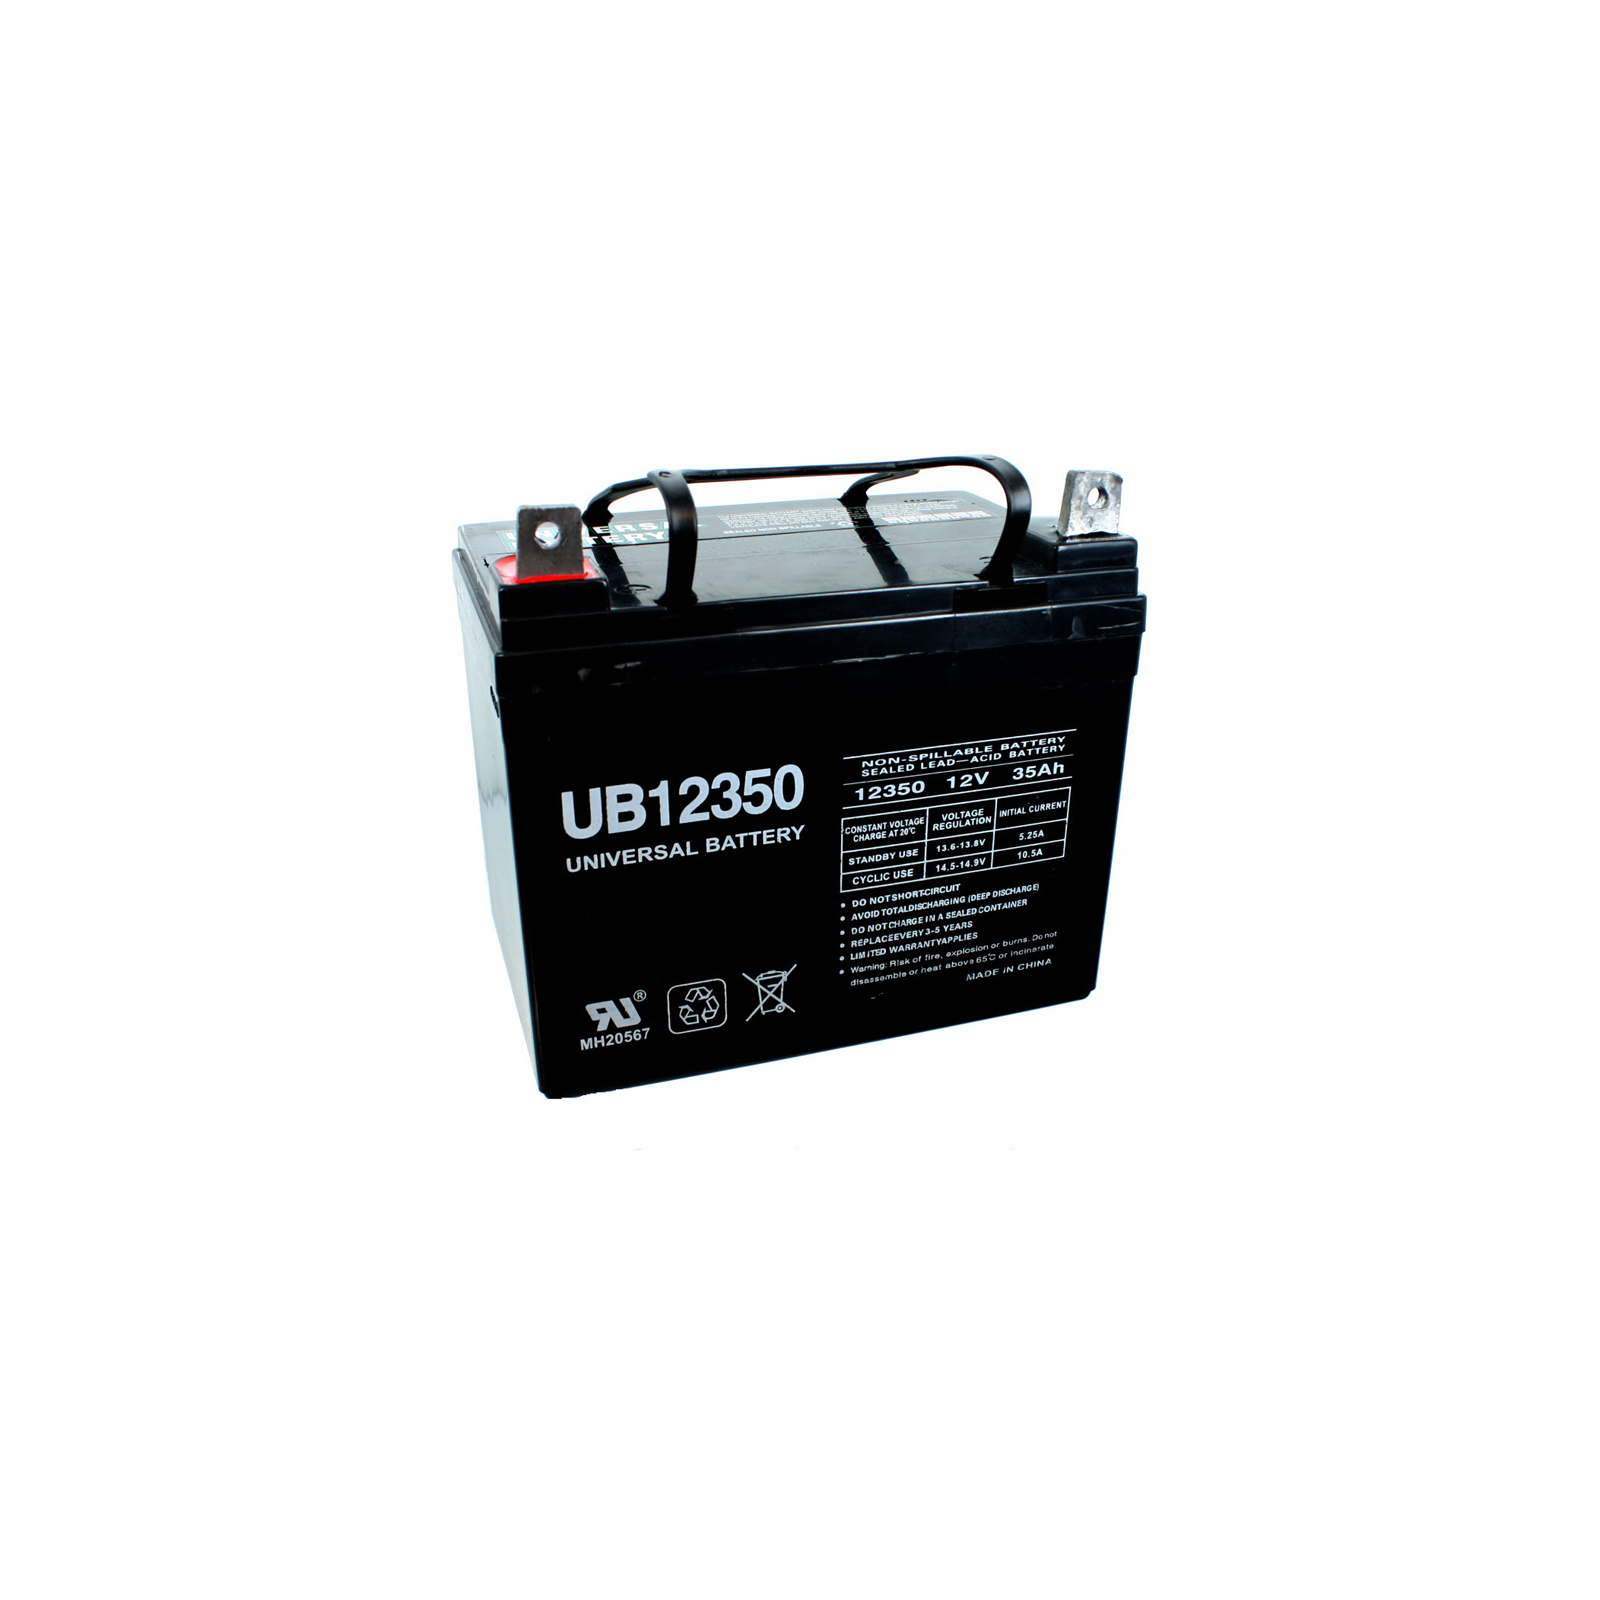 wheel chair battery gliding rocking chairs upg 12v ub12350 scooter 35ah u1 for pride mobility